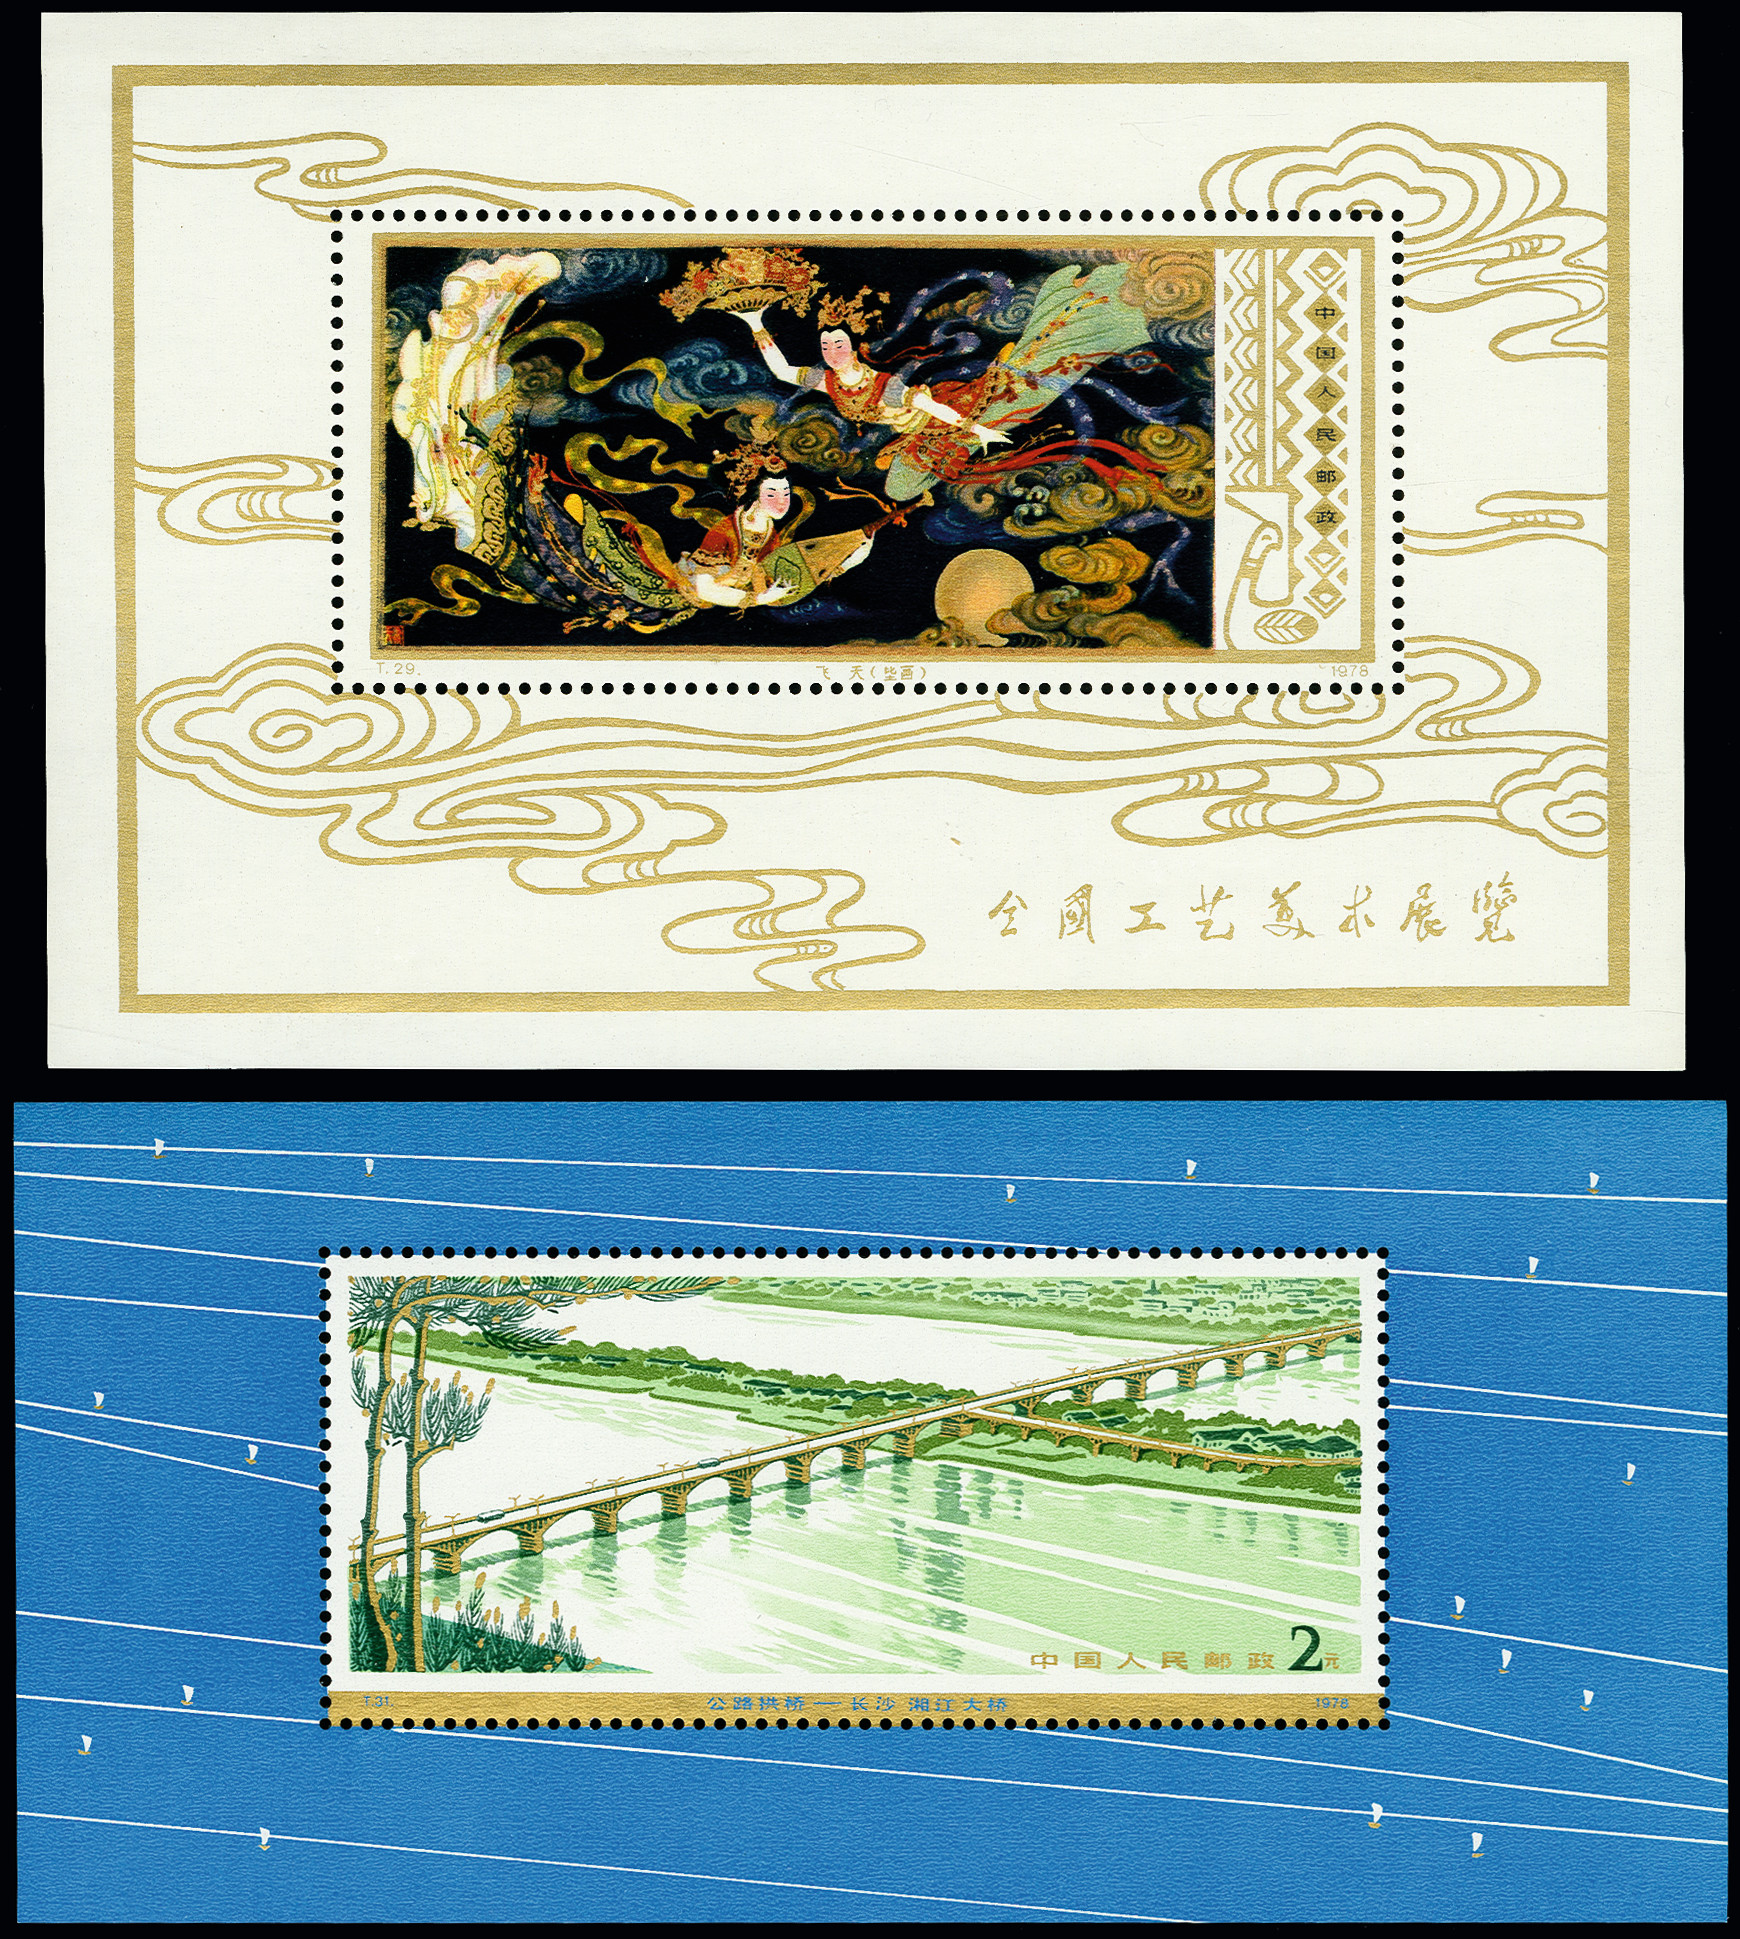 Lot 1009 - Overseas People's Republic of China -  Heinrich Koehler Auktionen Auction #367- Day 1